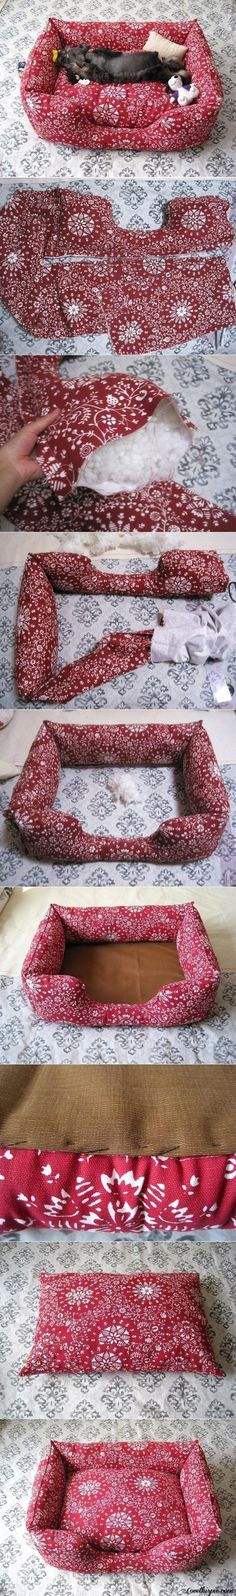 DIY Fabric Pet Sofa